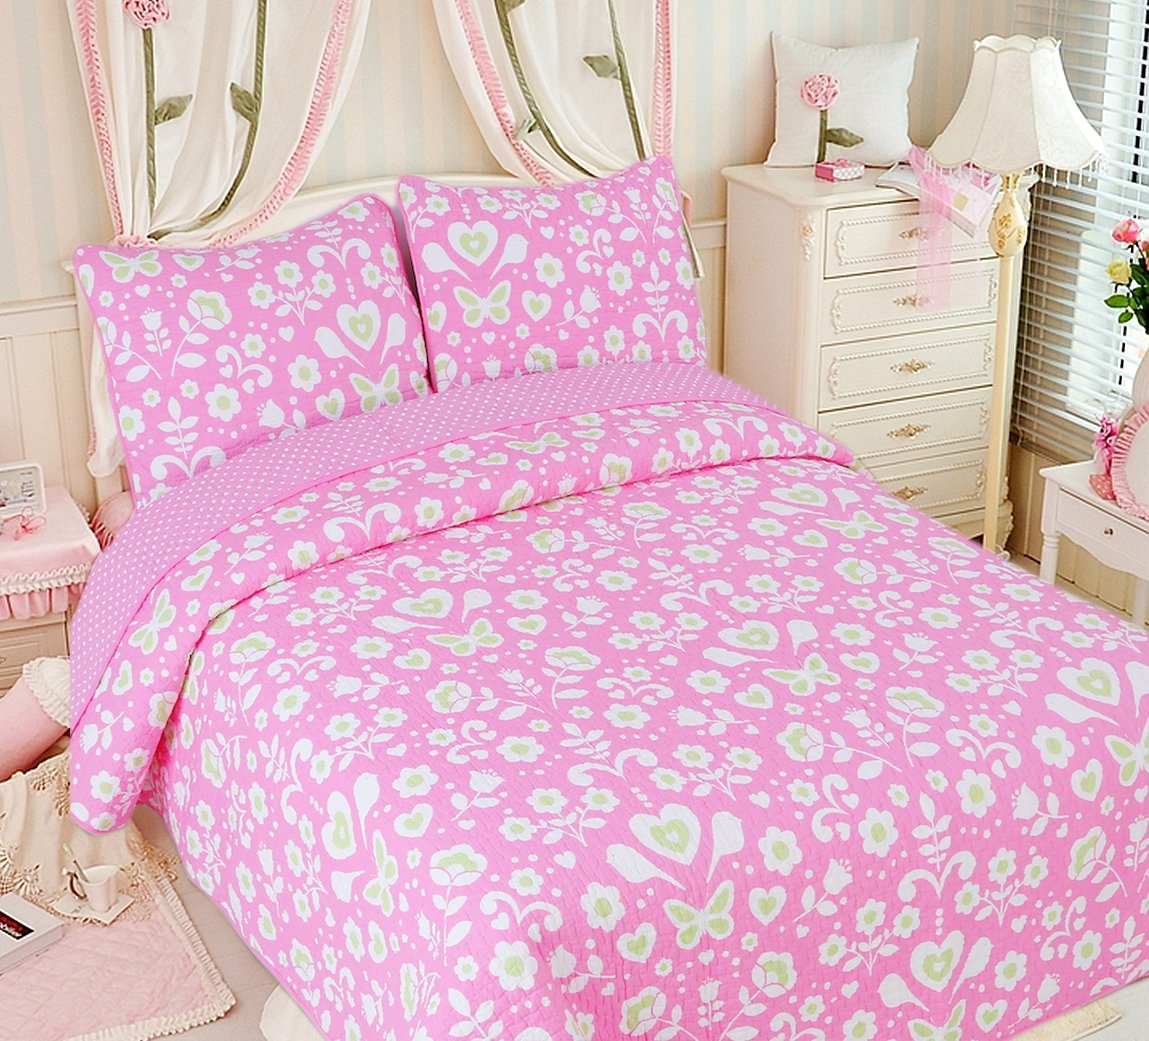 Cozy Line Home Fashions Goodnight Sweety Heart Quilt Bedding Set, Butterfly Flower Pink Green Printed 100% Cotton Reversible Coverlet Bedspread for Kids, Little Girl (Butterfly, Twin - 2 Piece)